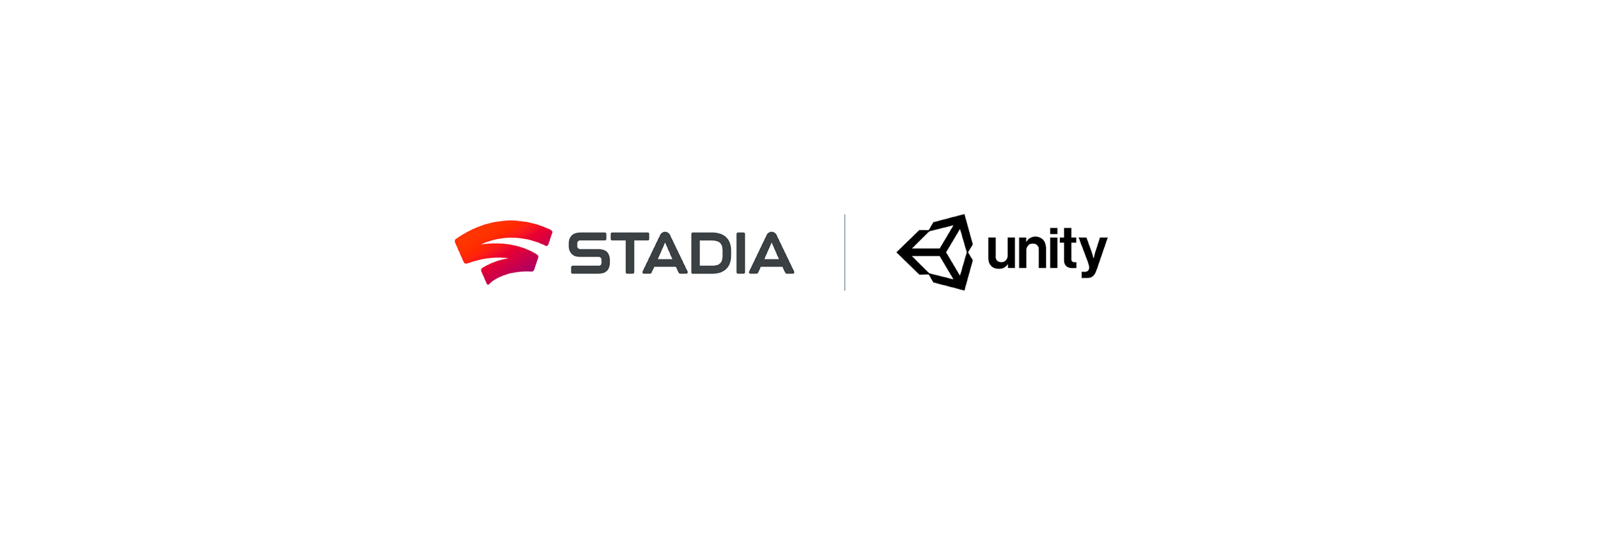 Unity Support for Stadia: Here's what you need to know Image